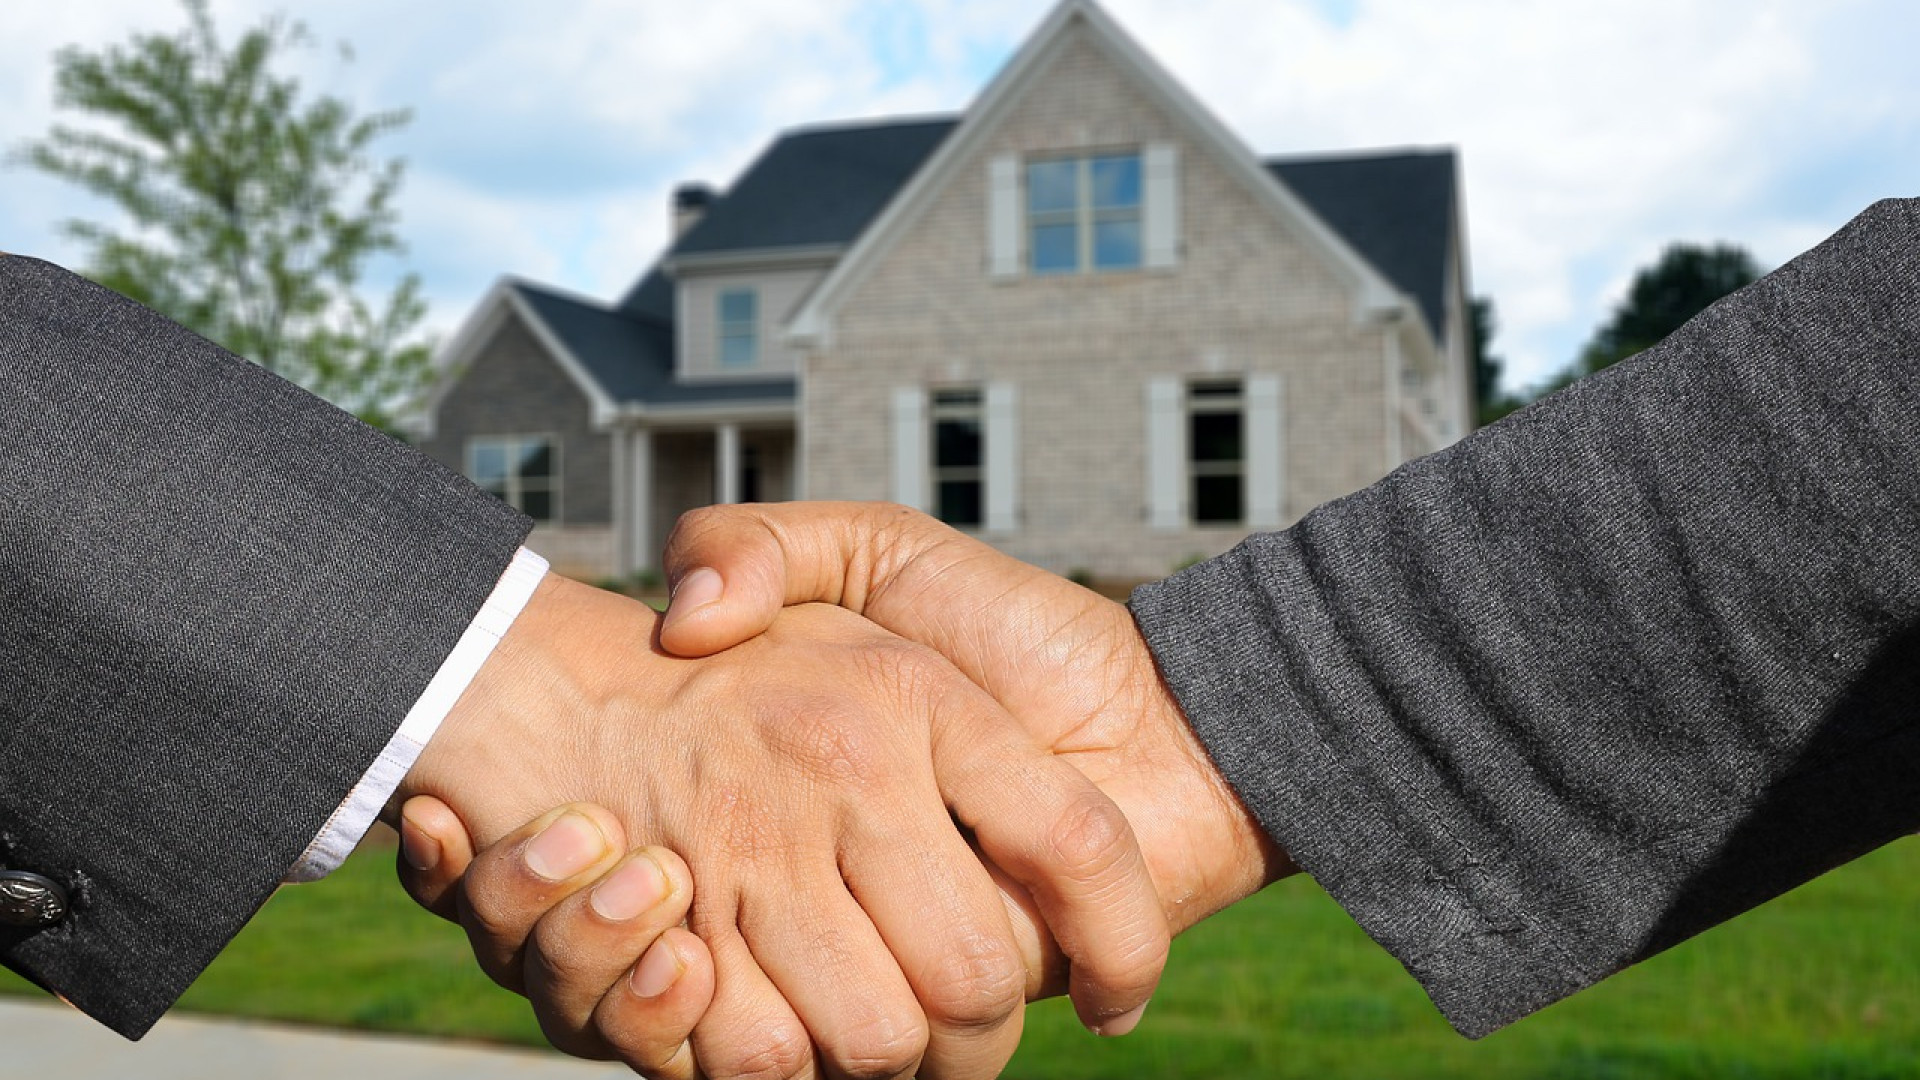 You are currently viewing Achat immobilier : pourquoi passer par une agence immobilière ?